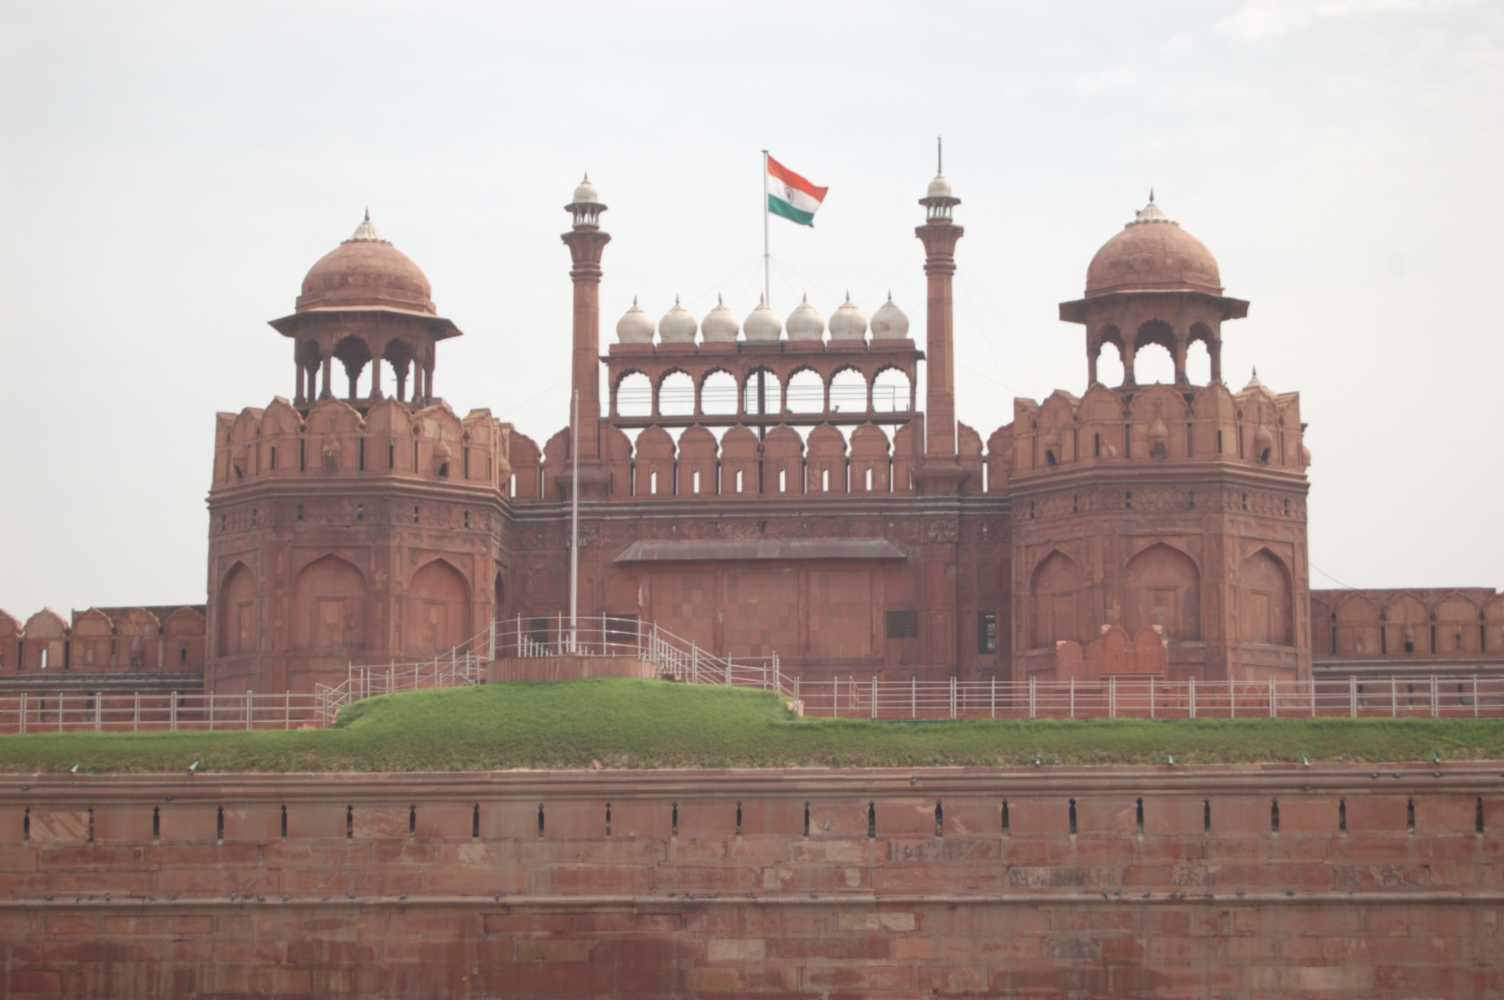 Lal Qila, a.k.a. Red Fort.